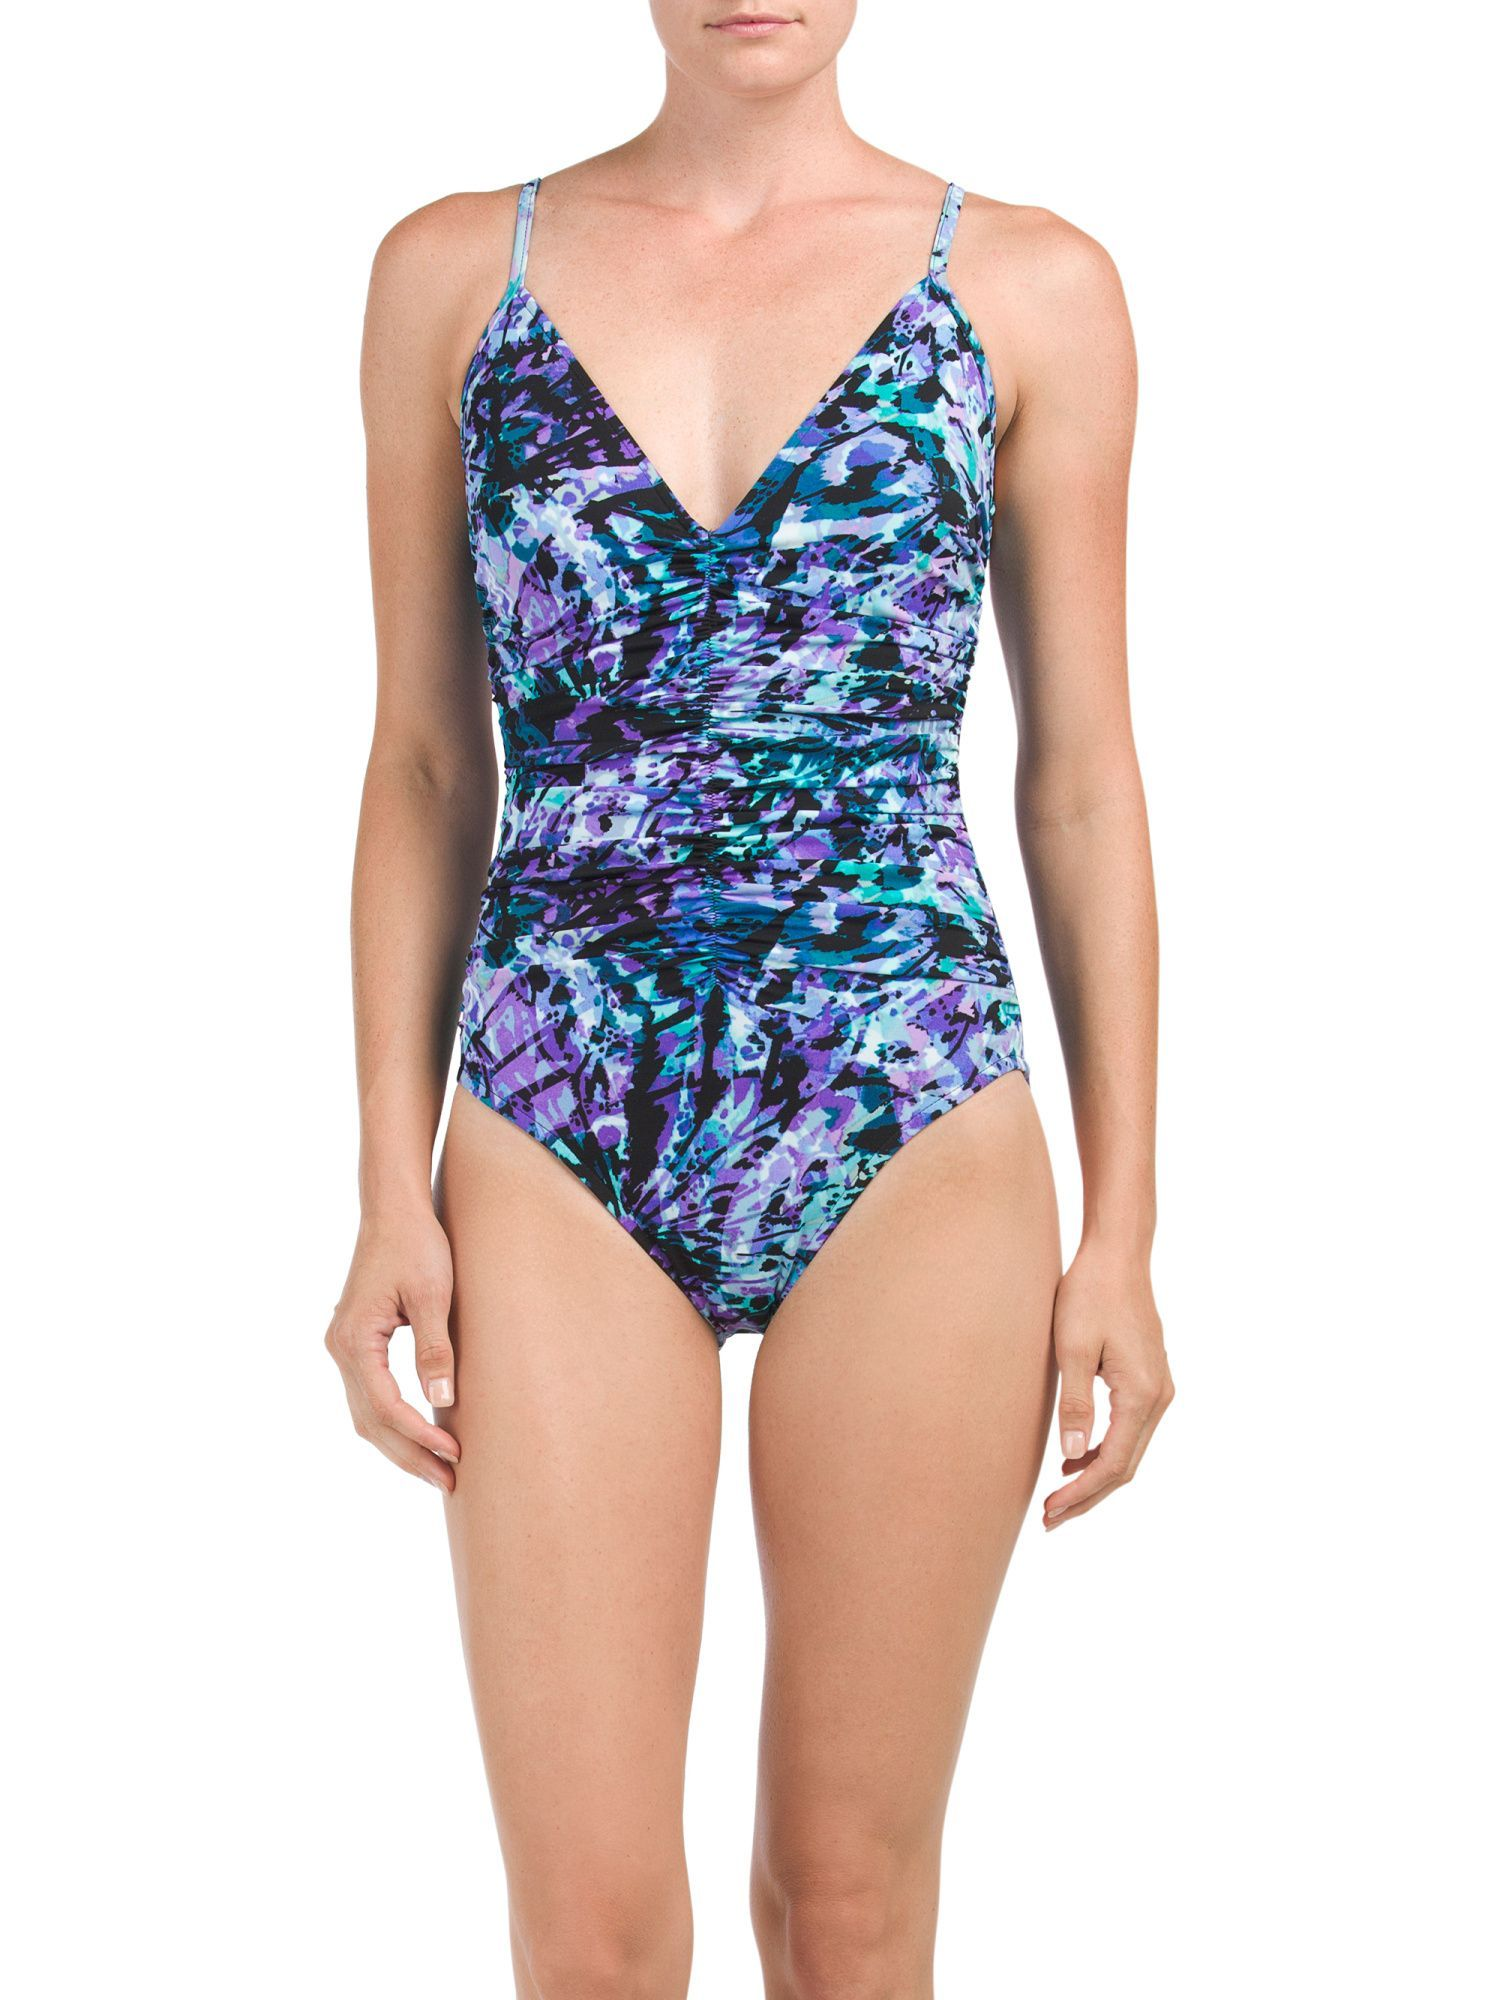 3f062f51ef5 Made In USA Thamar Mio Swimsuit Honeymoon Outfits, One Piece Swimsuit,  Bodice, Womens